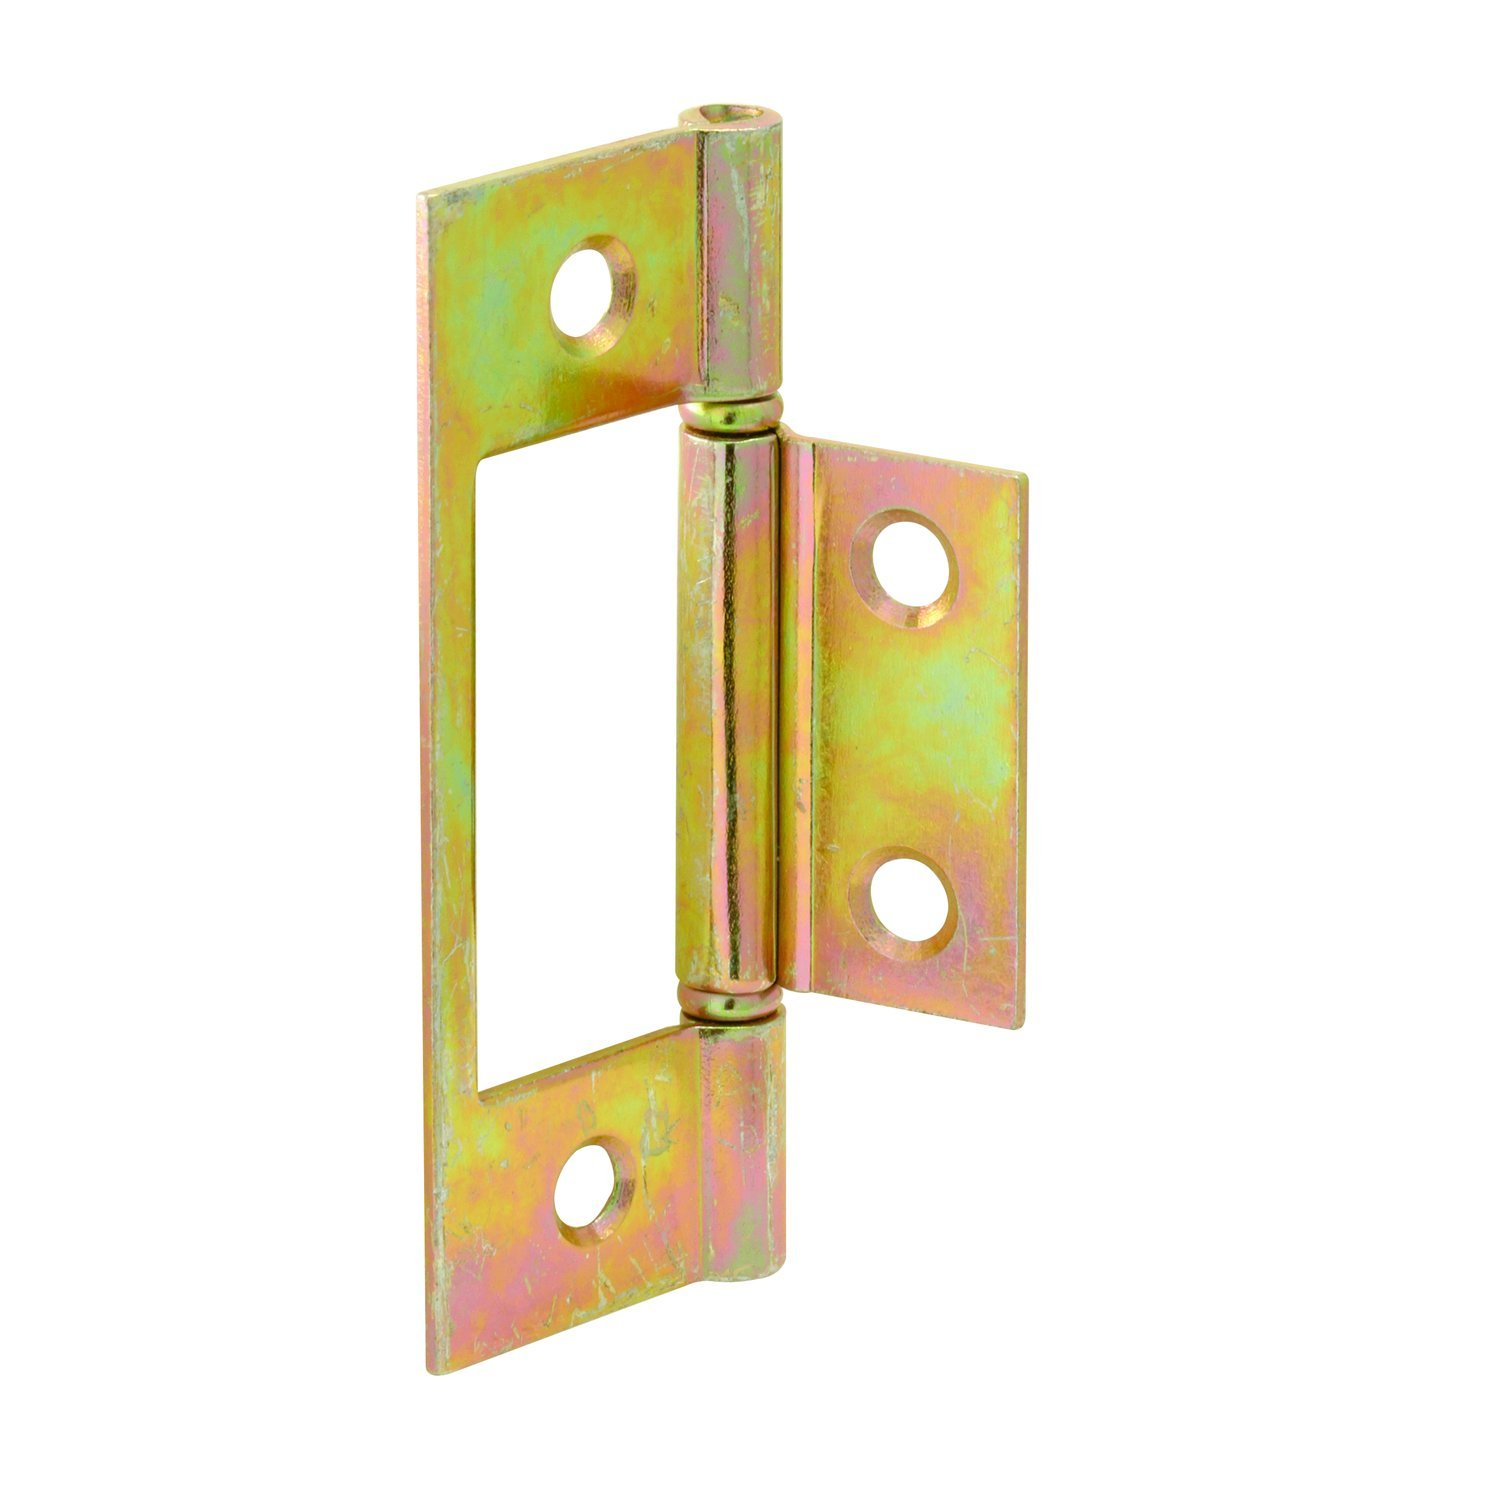 Prime-Line MP6656 Bi-Fold Door Hinge, 1-7/8 in. x 3 in, Steel, Brass Plated, Non-Mortise, Pack of 6 Hinges